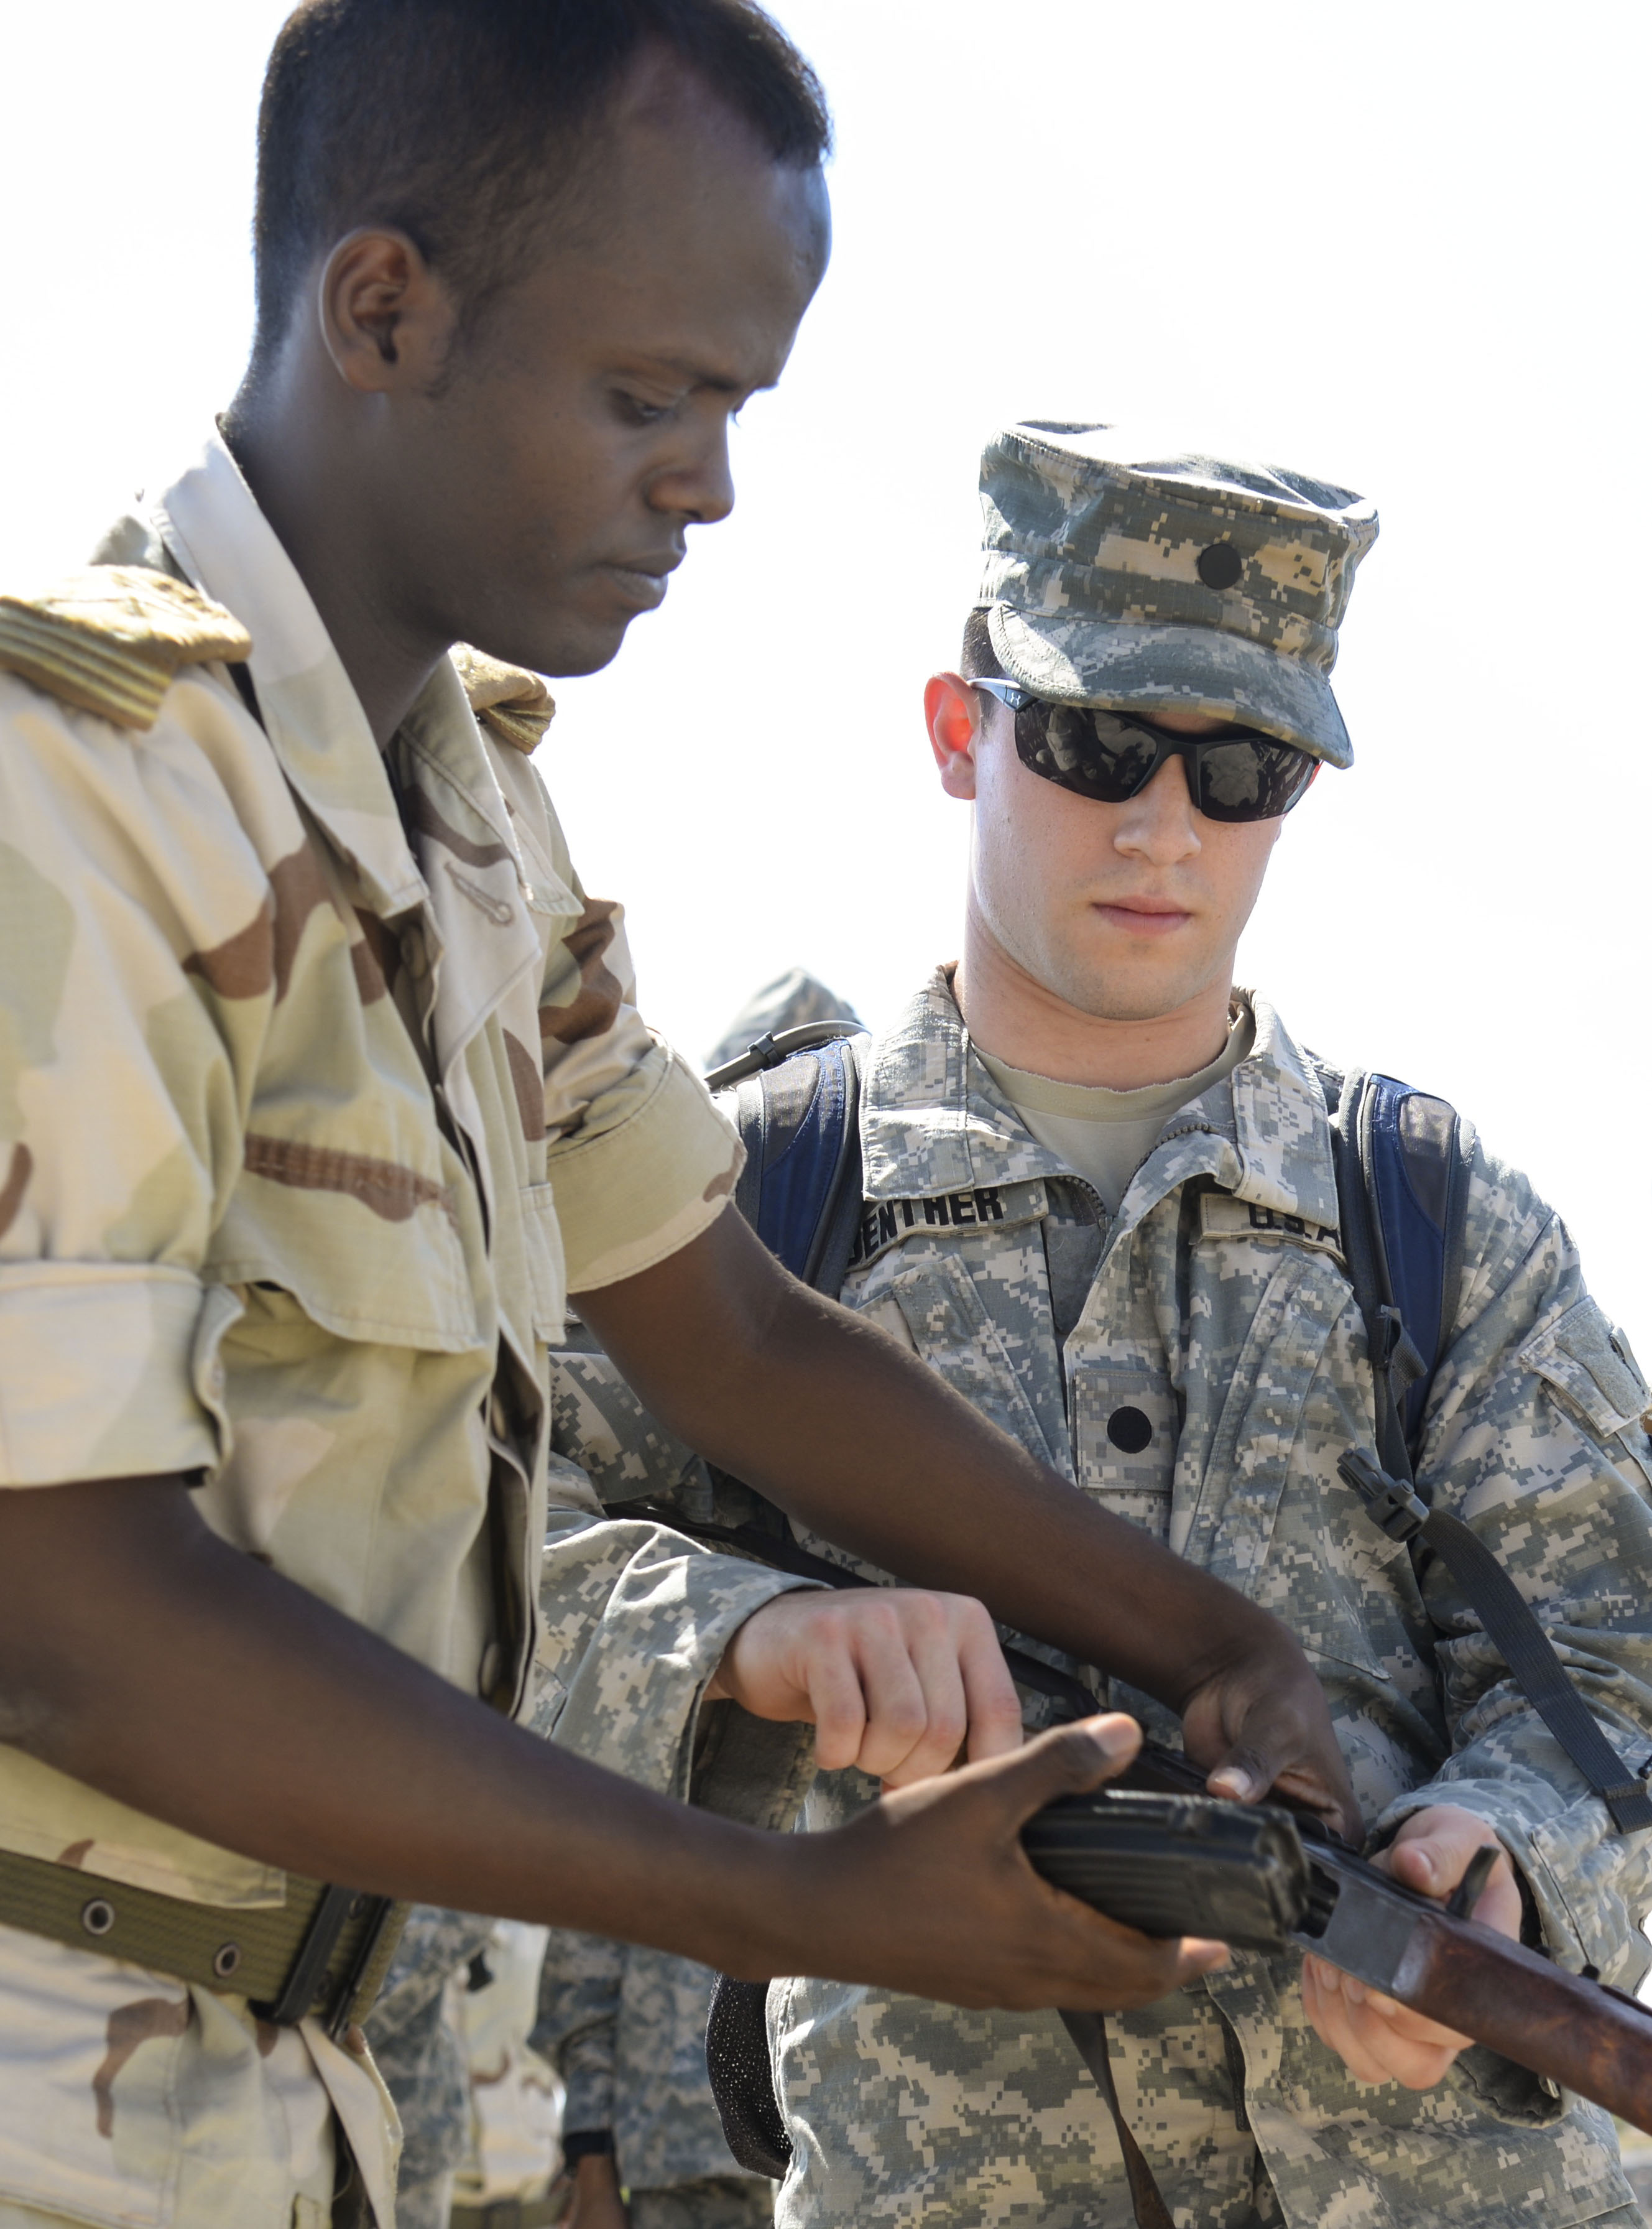 Jackson Guenther, a U.S. Army Reserve Officer Training Corps cadet from Mississippi State University, receives instruction from a Djiboutian Army weapons instructor at the Djiboutian Army Academy in Arta, Djibouti, July 25, 2016. More than 30 cadets took turns field-stripping and reassembling the rifle. (U.S. Air Force photo by Staff Sgt. Benjamin Raughton/Released)